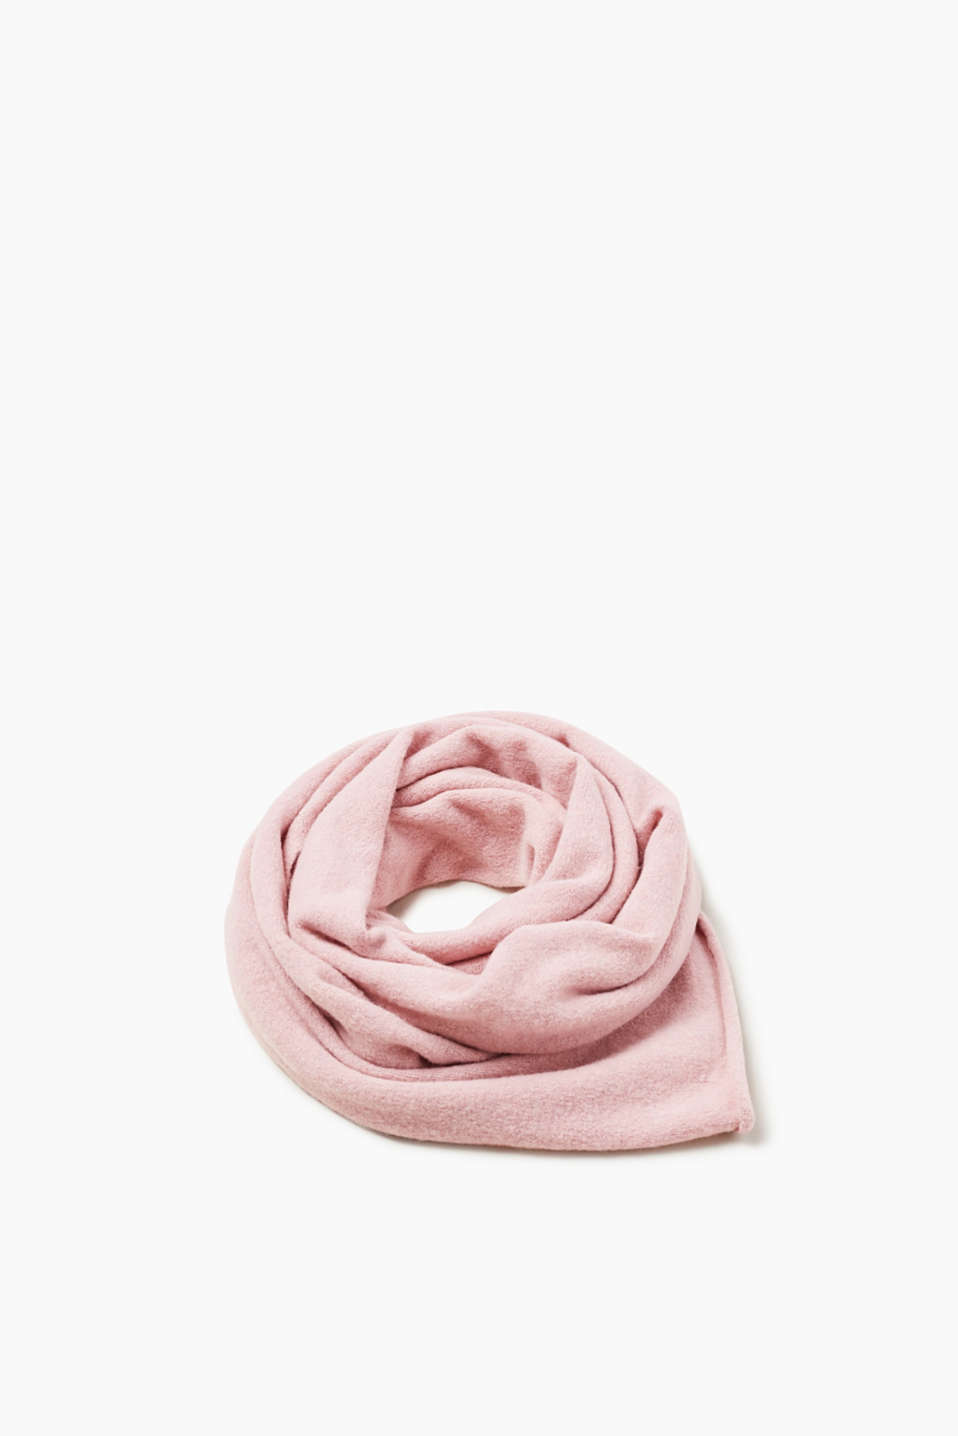 For indoors or outdoors, this basic scarf is defined by its narrow rolled edges and elegant percentage of wool.